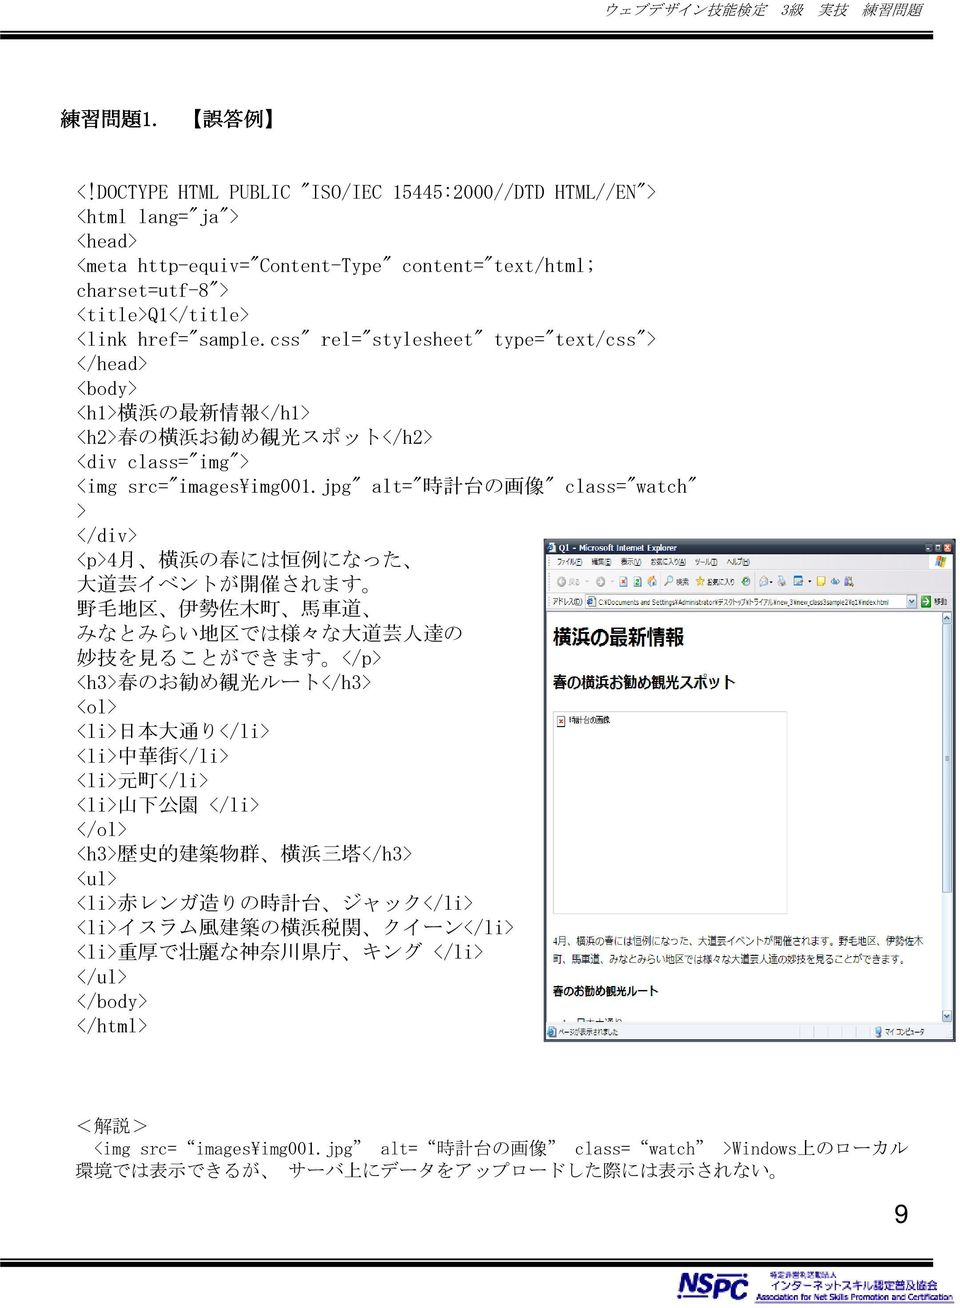 "css"" rel=""stylesheet"" type=""text/css""> </head> <body> <h1> 横 浜 の 最 新 情 報 </h1> <h2> 春 の 横 浜 お 勧 め 観 光 スポット</h2> <div class=""img""> <img src=""images img001."